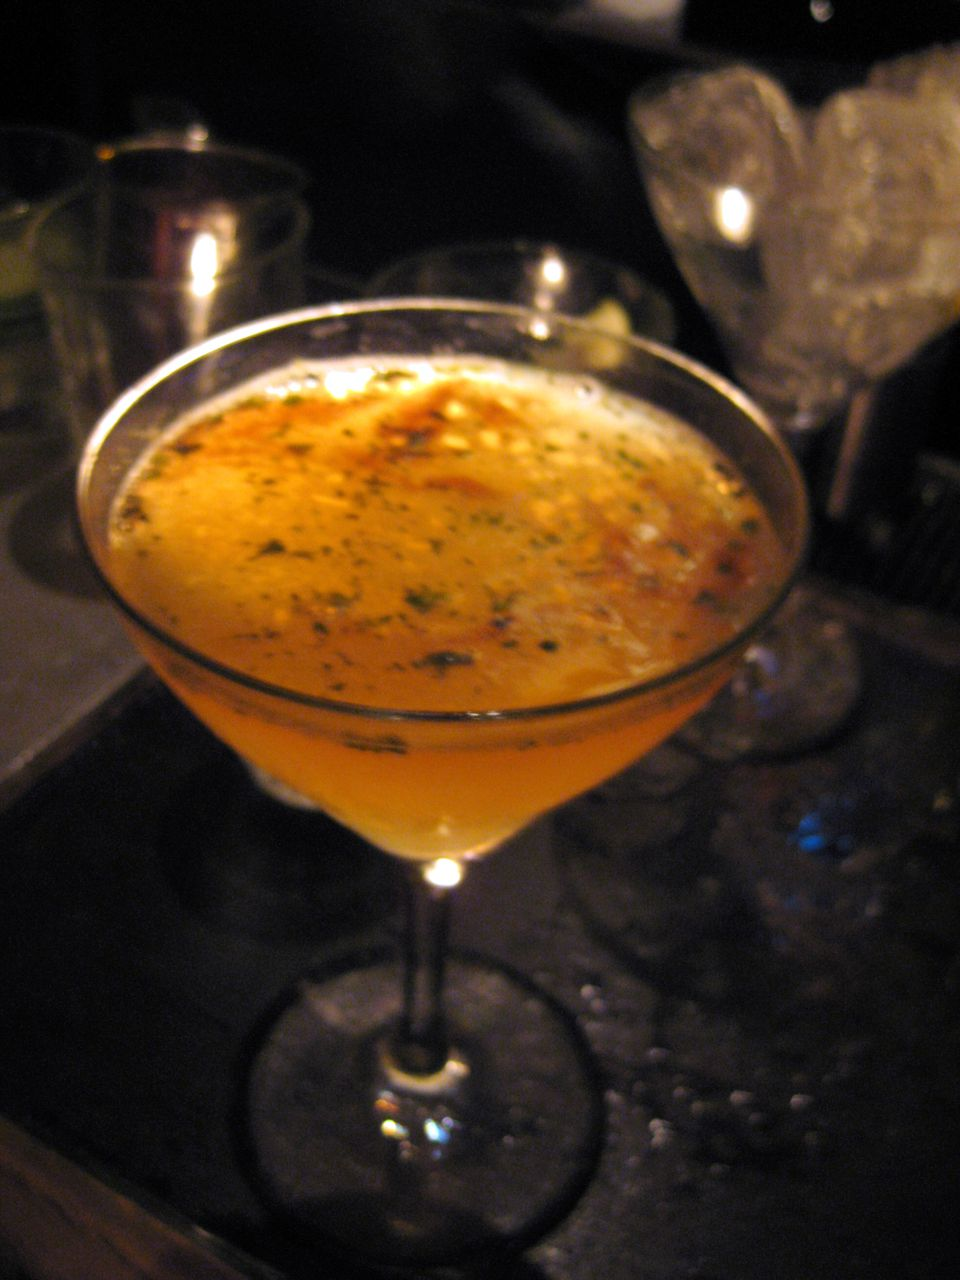 The Experimental Cocktail Club is a favorite spot for exceptional drinks in Paris.